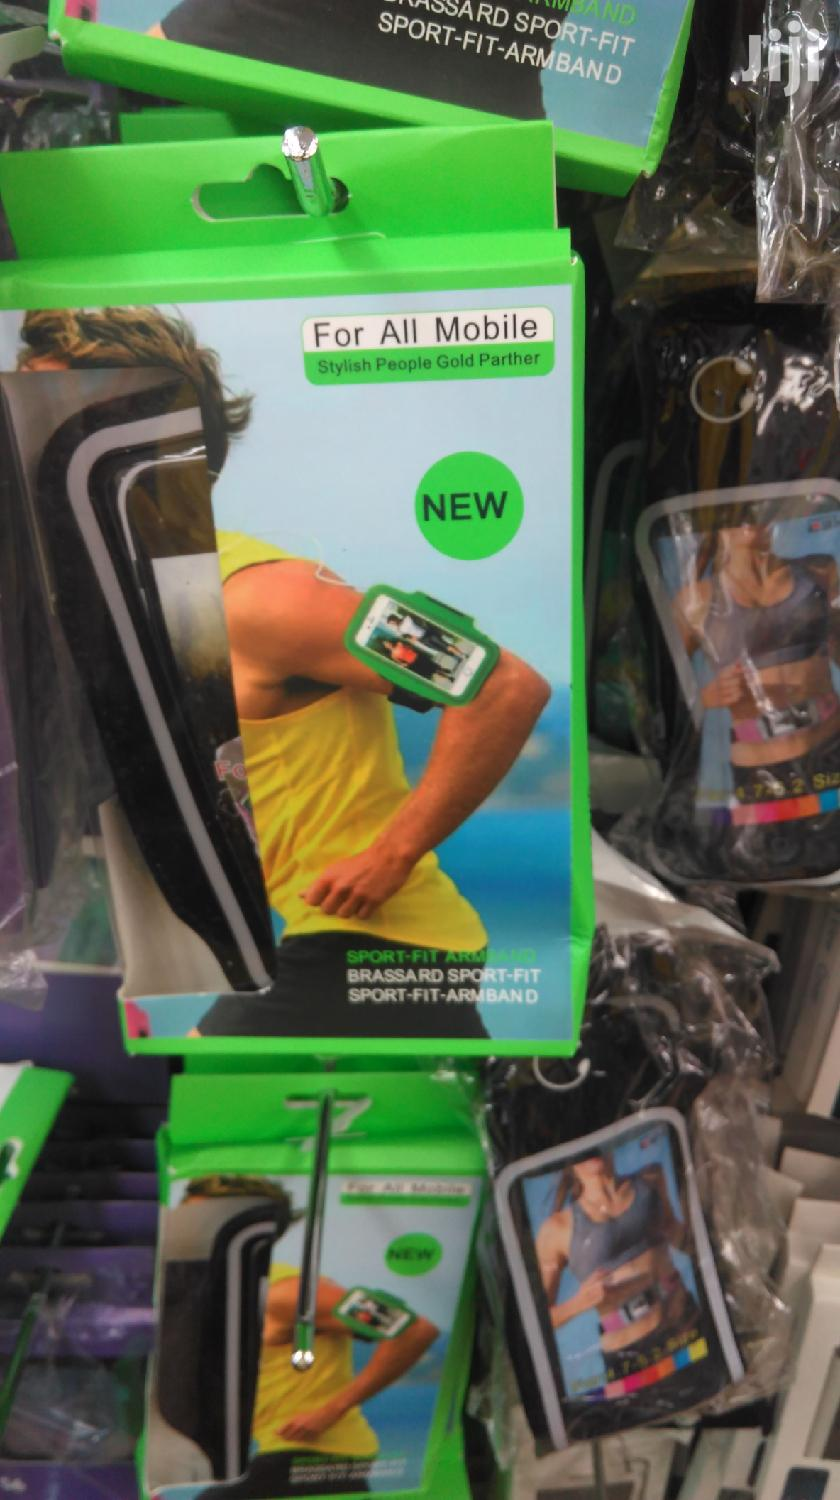 Waist Bag Mobile Phone Armband Holder New Xl | Accessories for Mobile Phones & Tablets for sale in East Legon, Greater Accra, Ghana